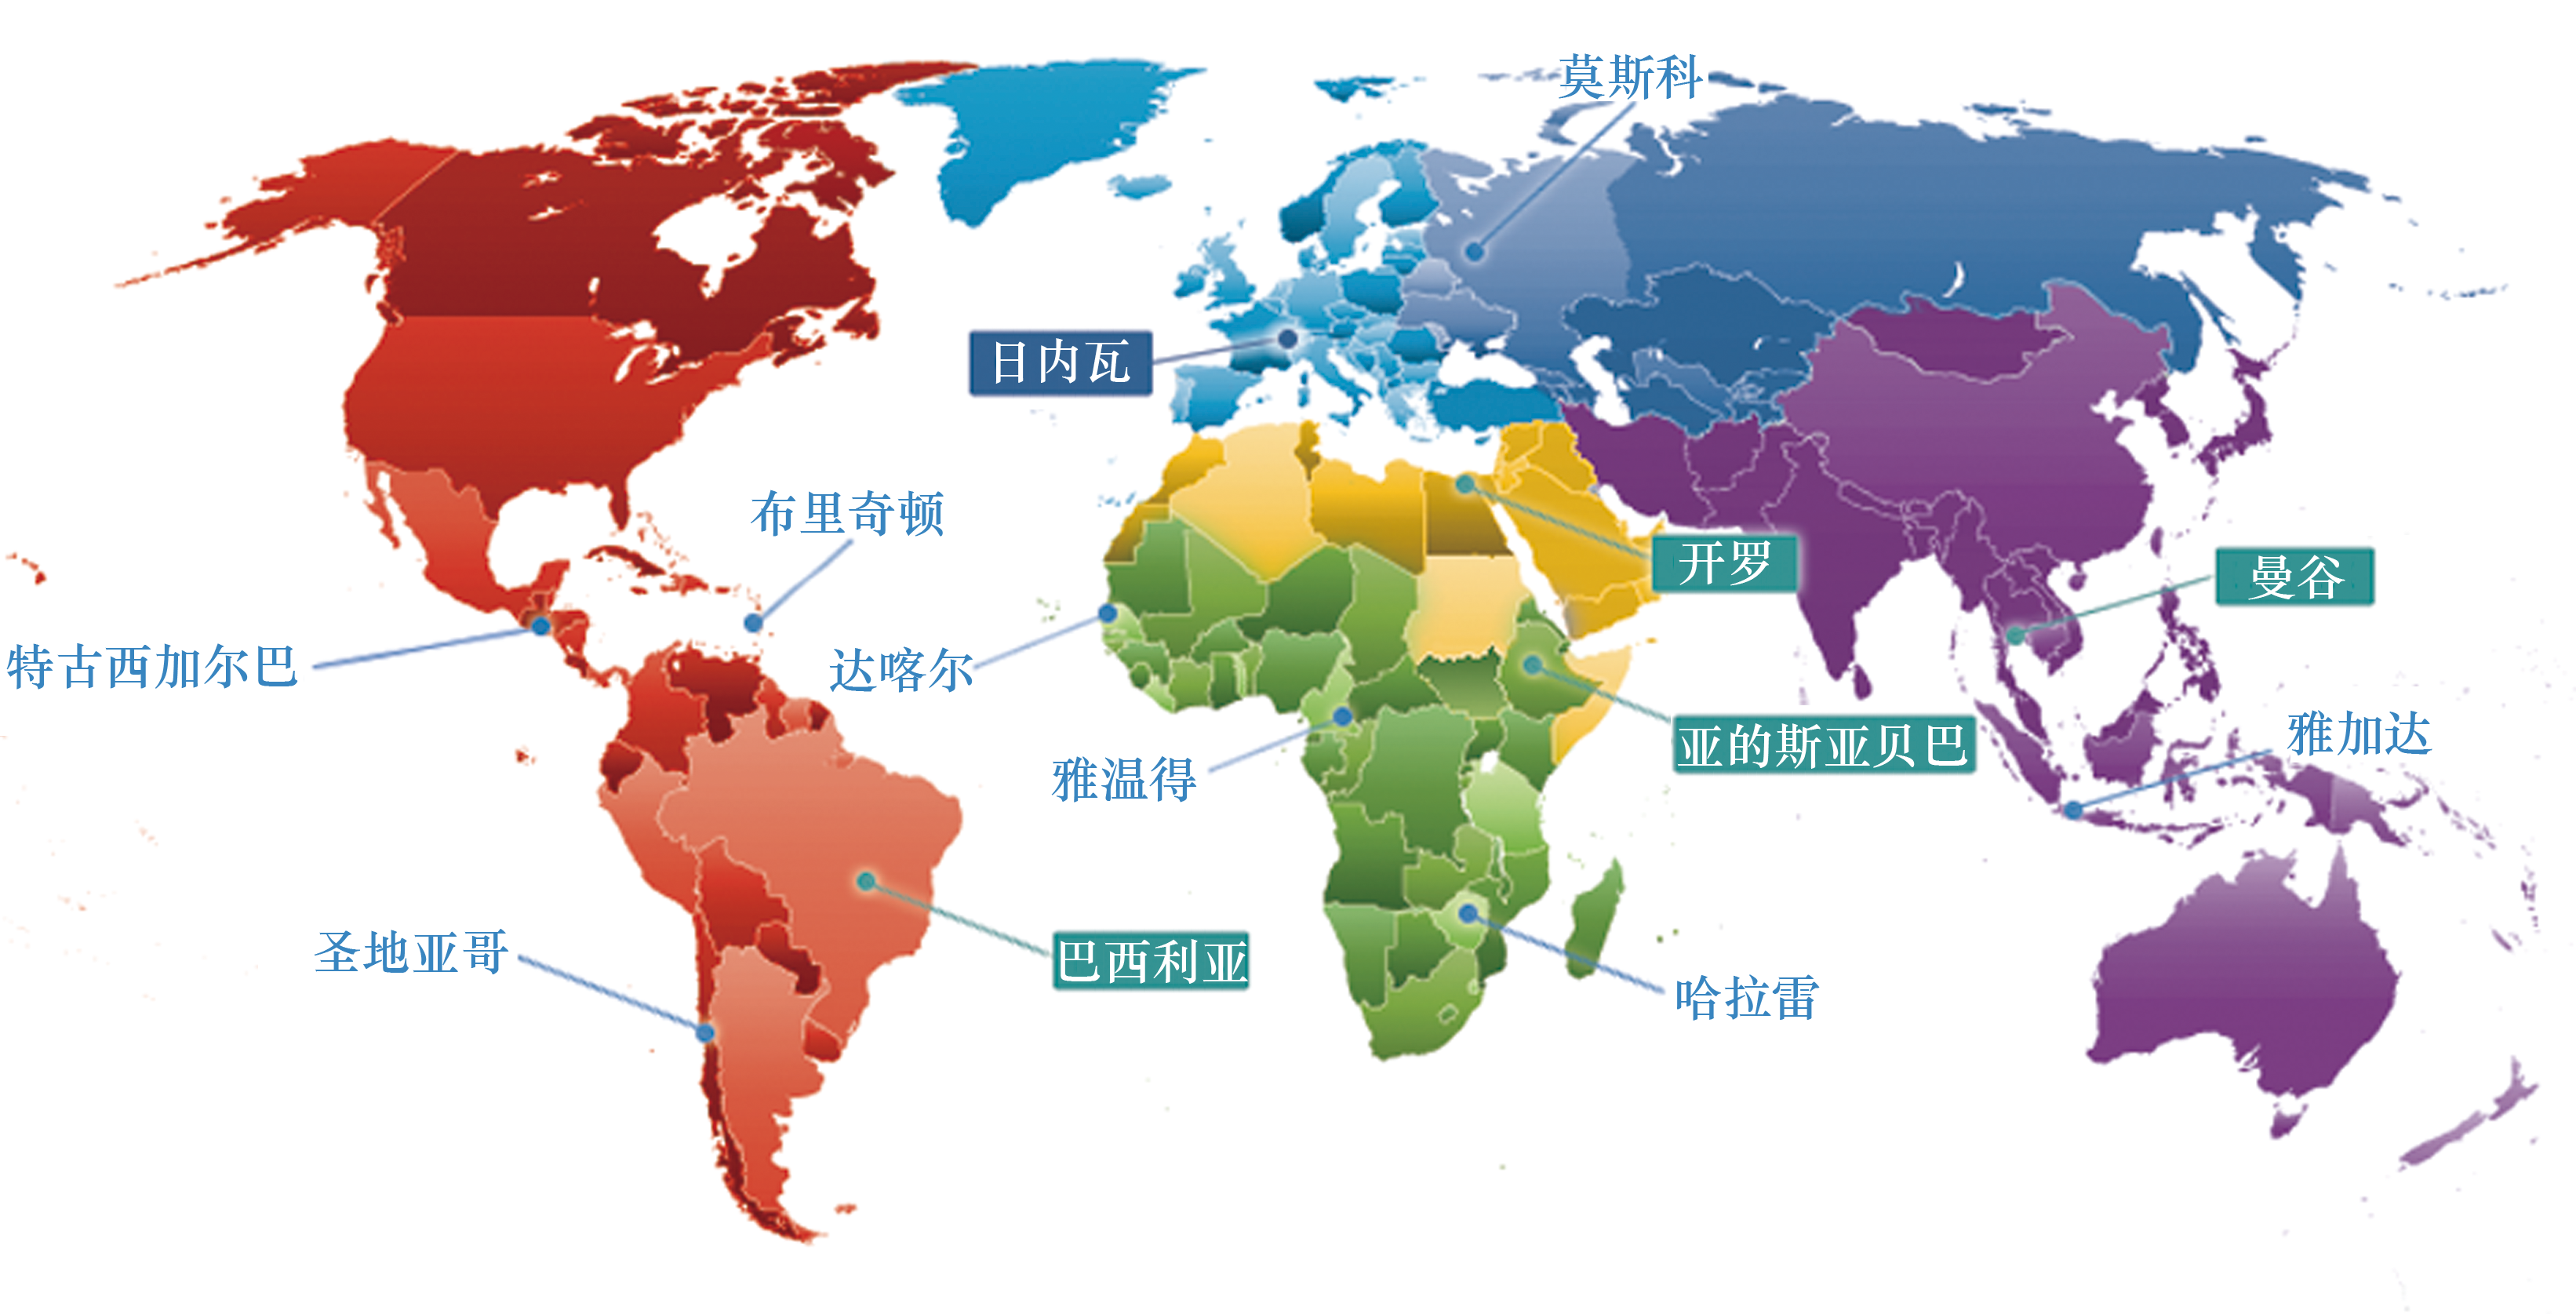 itu_map_800x600chinese.png